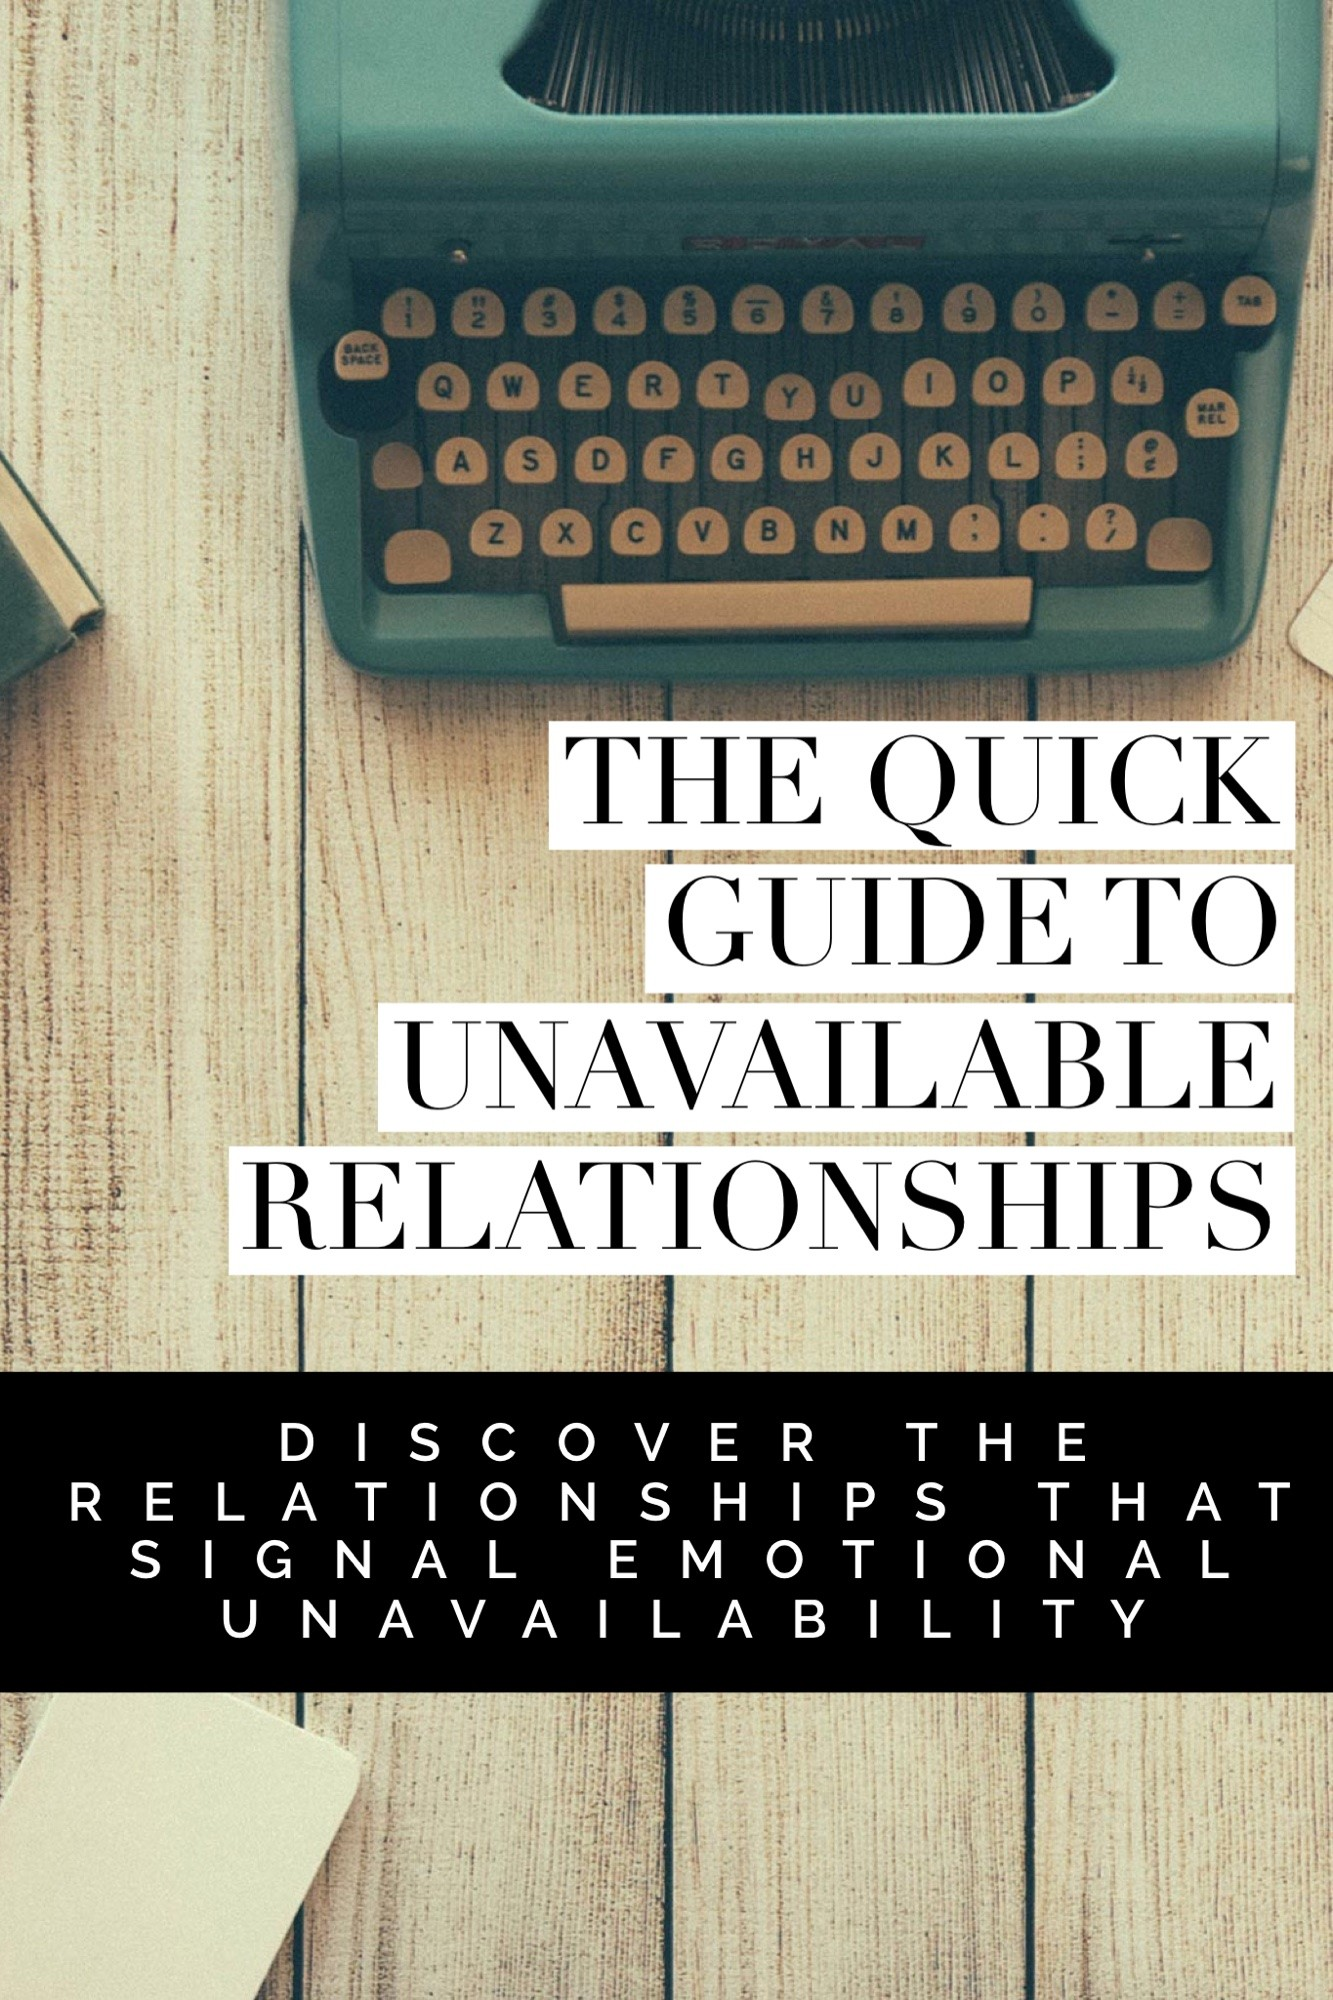 The Quick Guide To Unavailable Relationships : discover the relationships that signal emotional unavailability